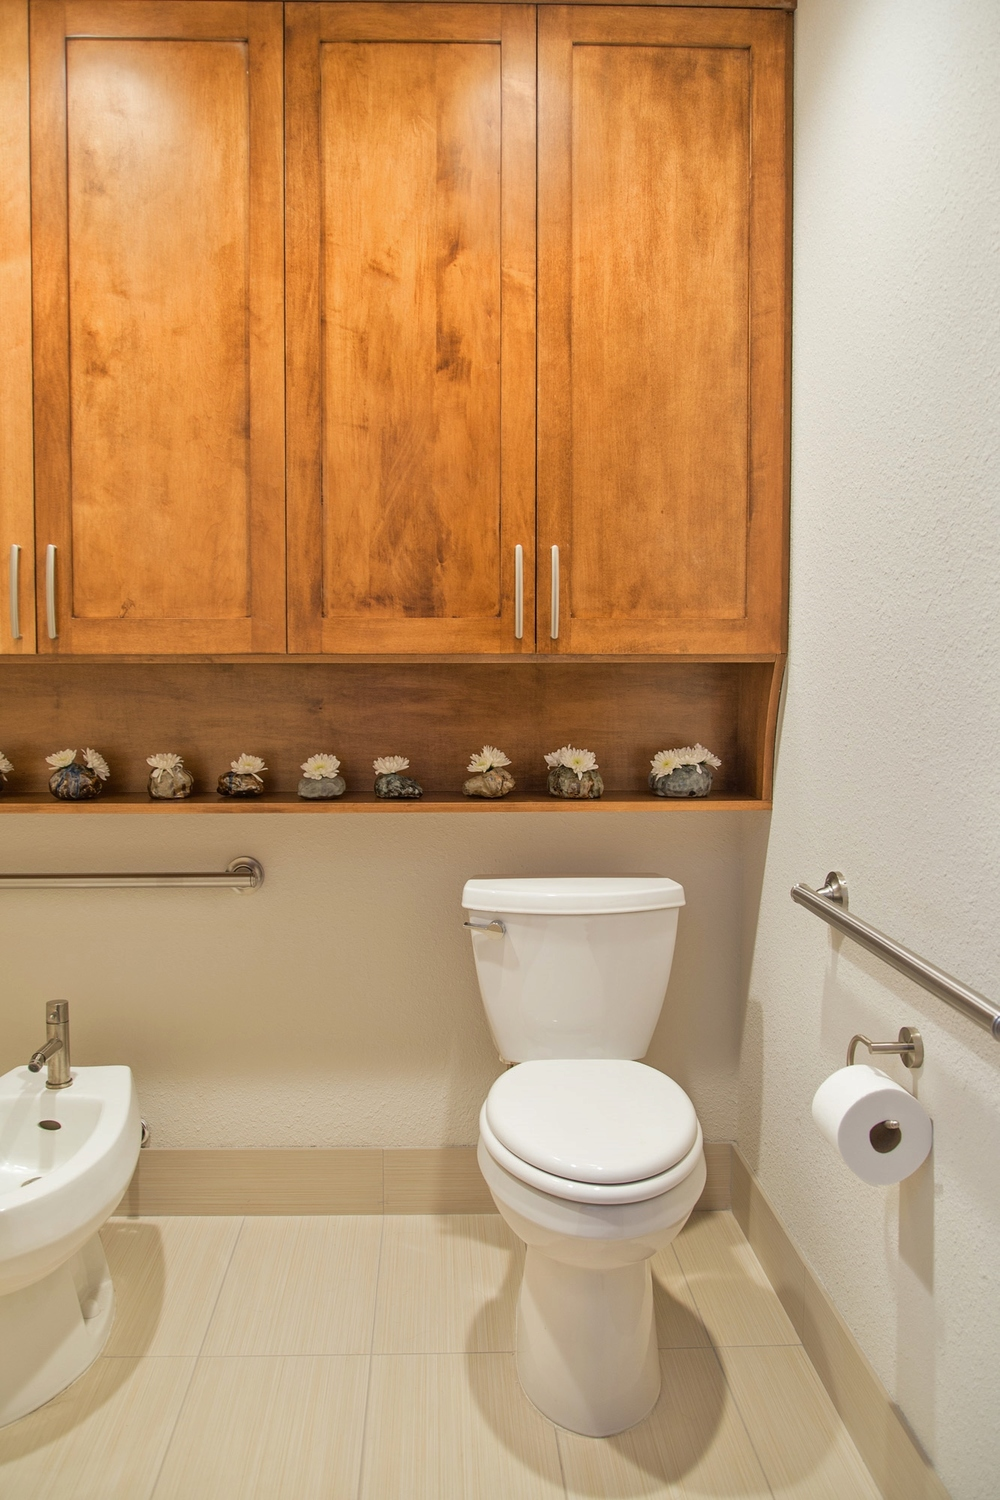 bathroom remodel featuring u niversal design accessible bathroom curbless